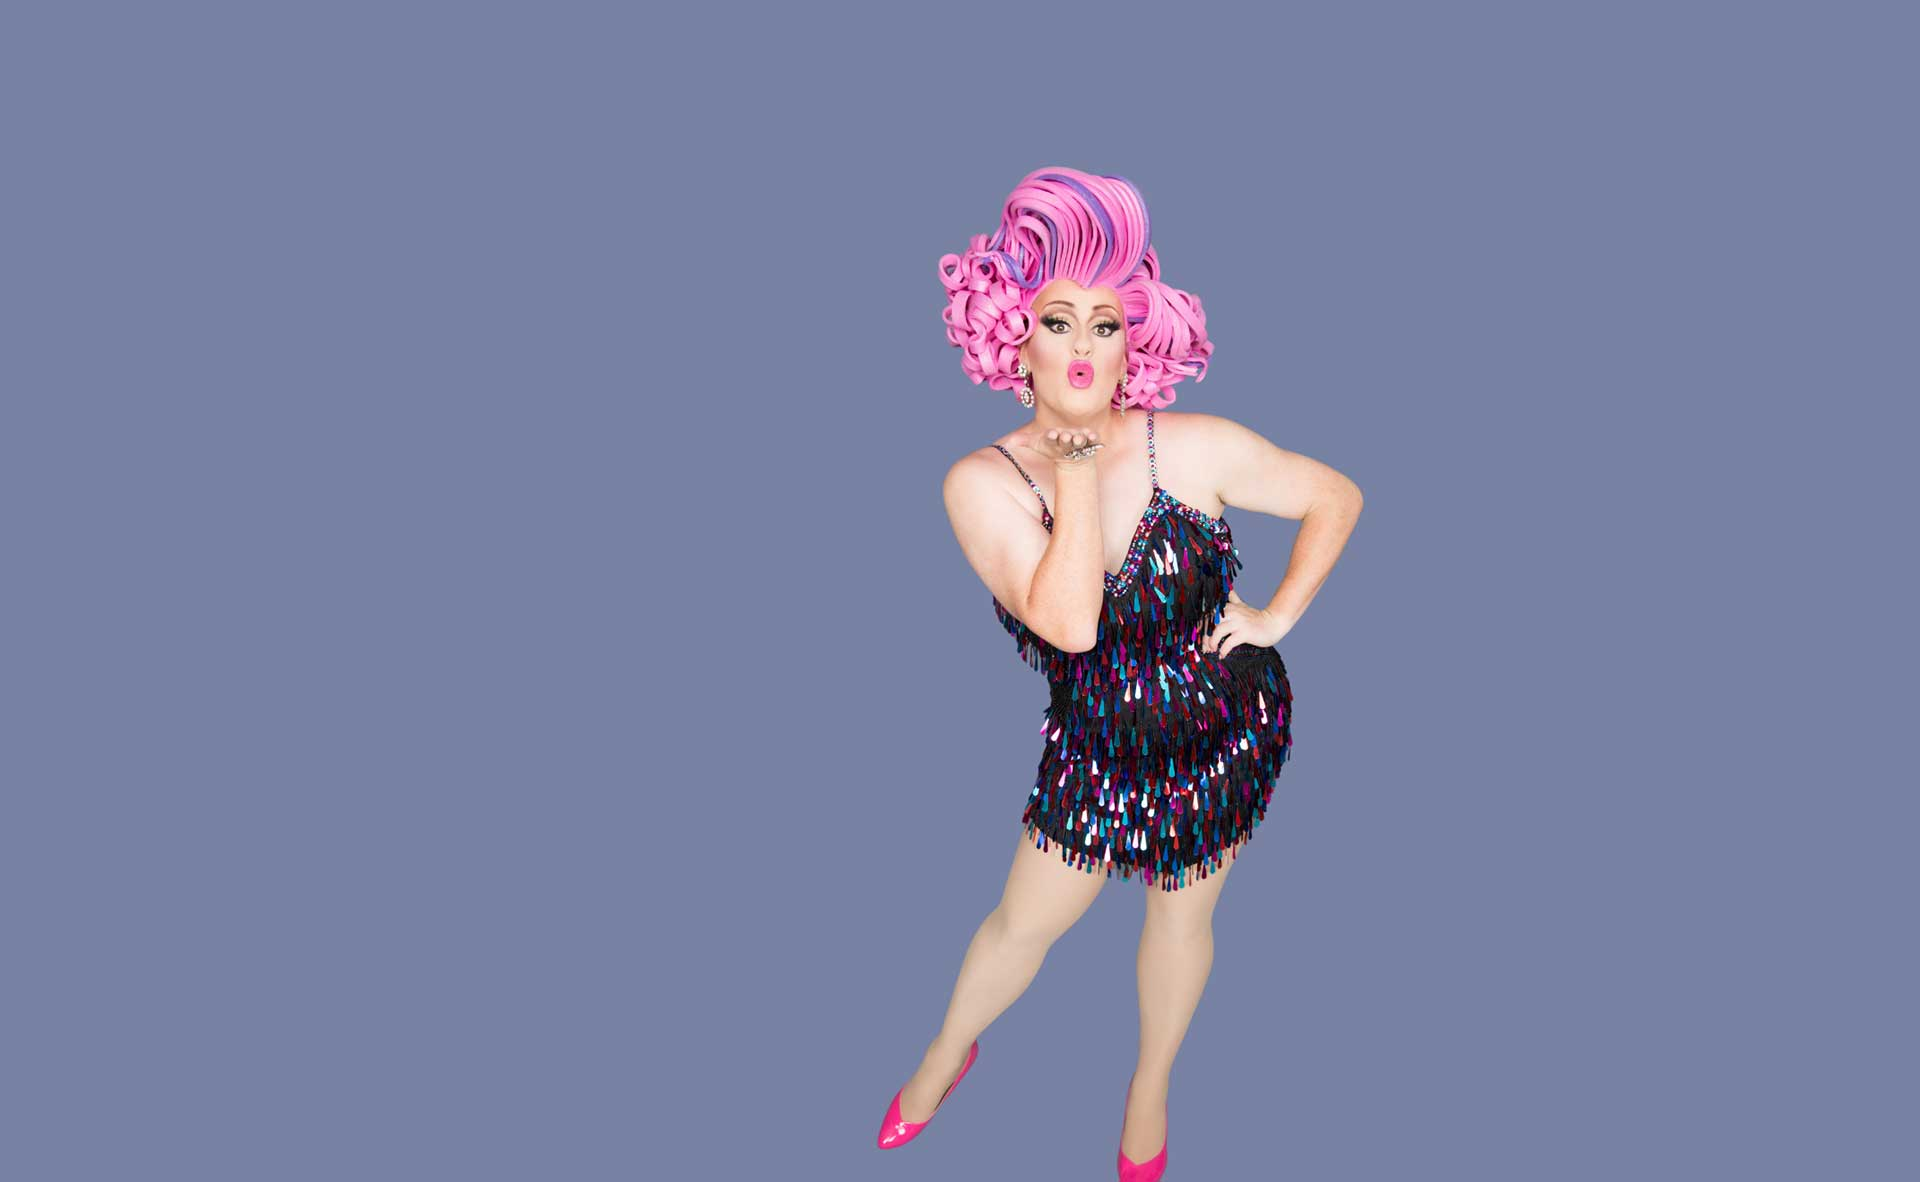 LIFE'S A DRAG: DeanMisdale